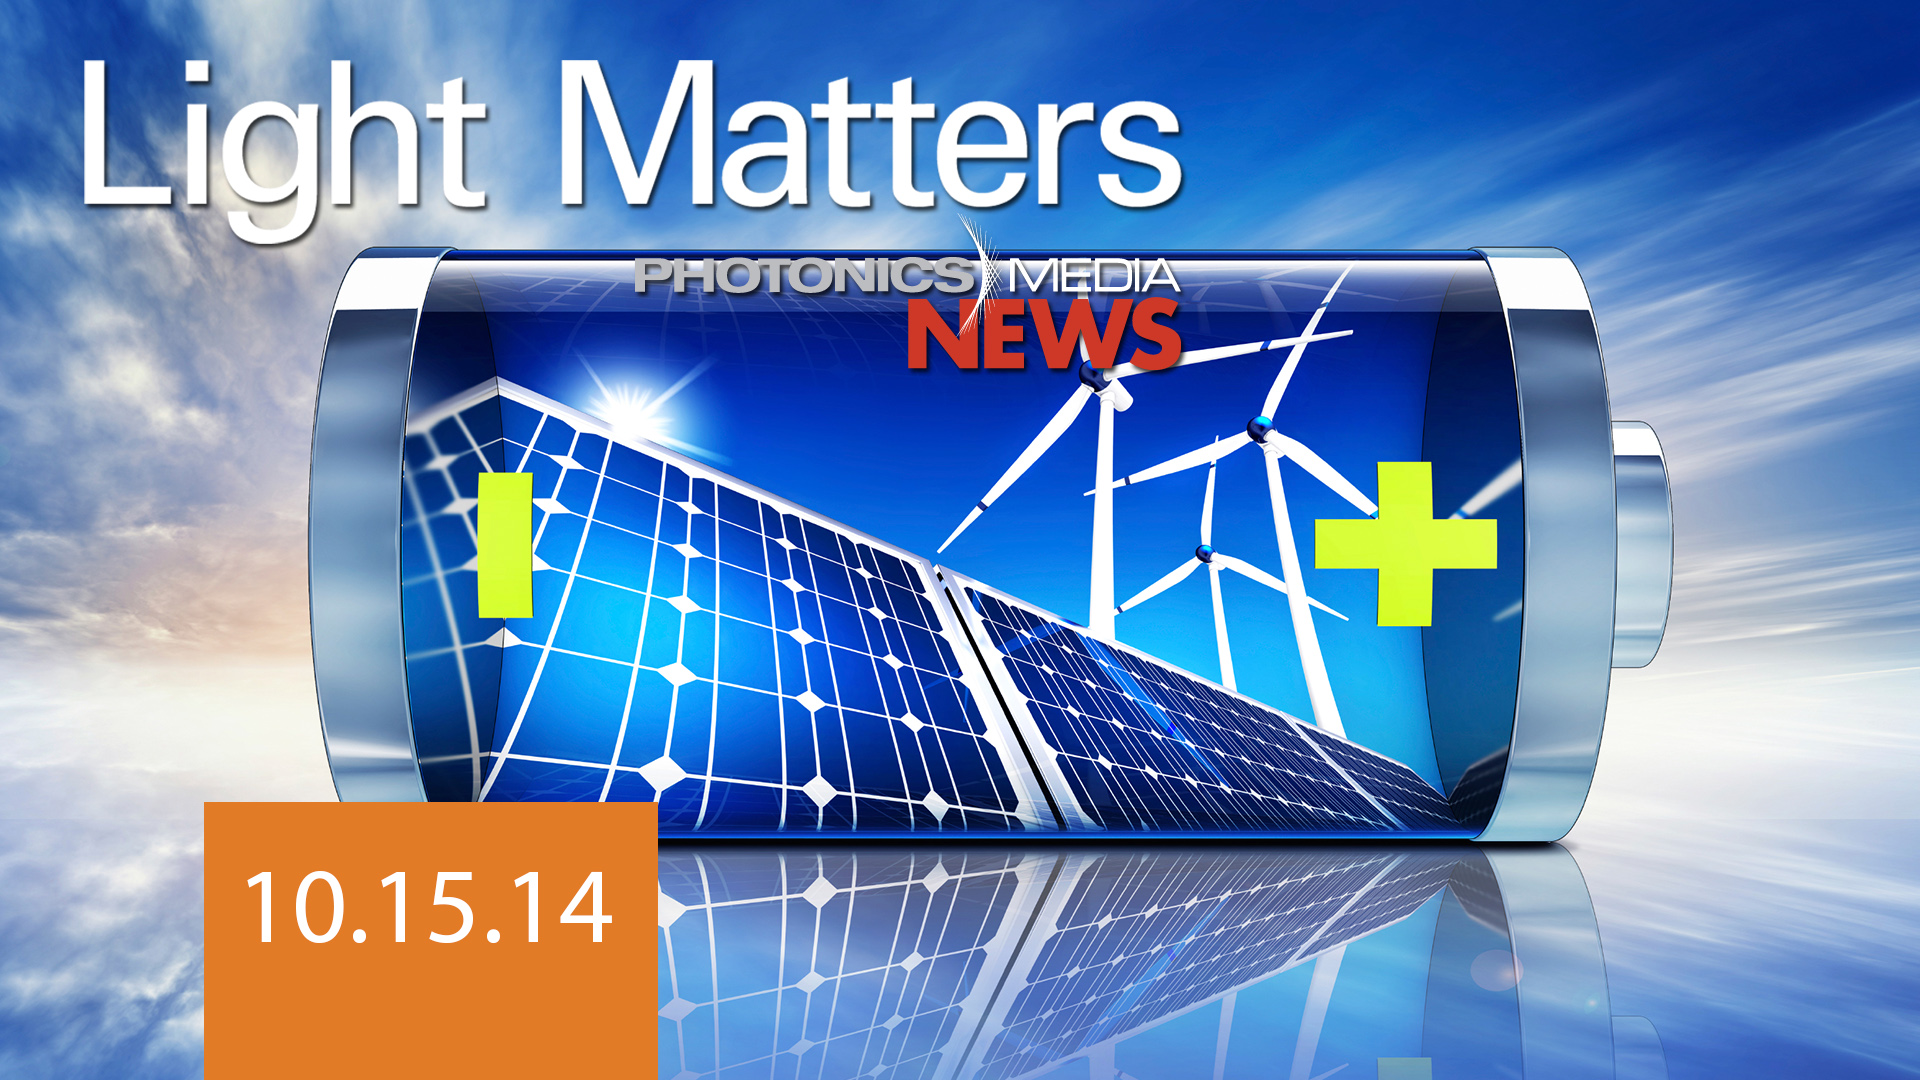 3-D Imaging & Energy-Storing Solar Cells - LIGHT MATTERS 10/15/14